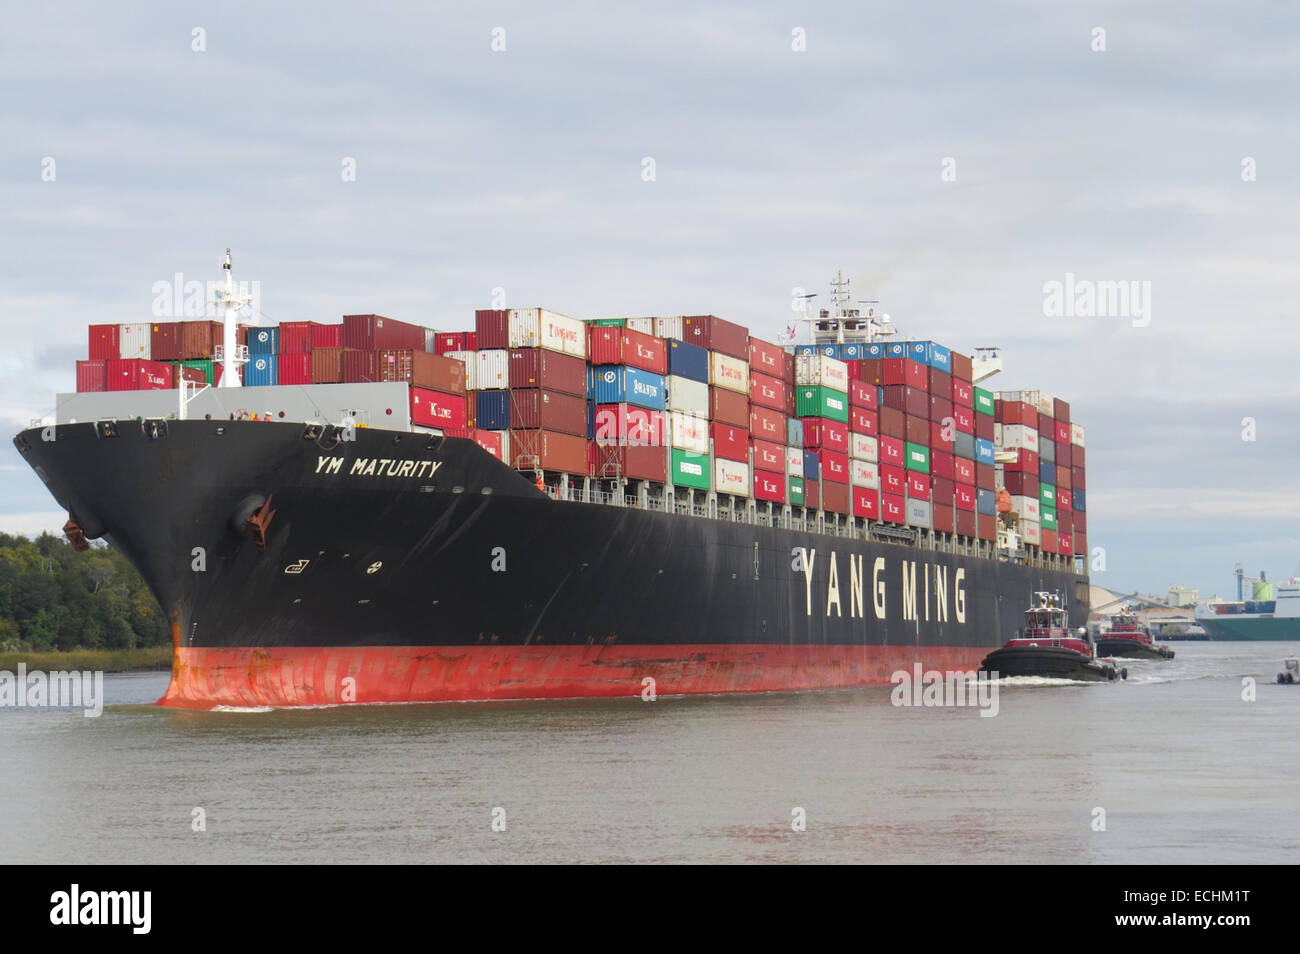 YANG WING 'MATURITY' Container ship belonging to the Taiwanese shipping company moving up the Savannah River, - Stock Image